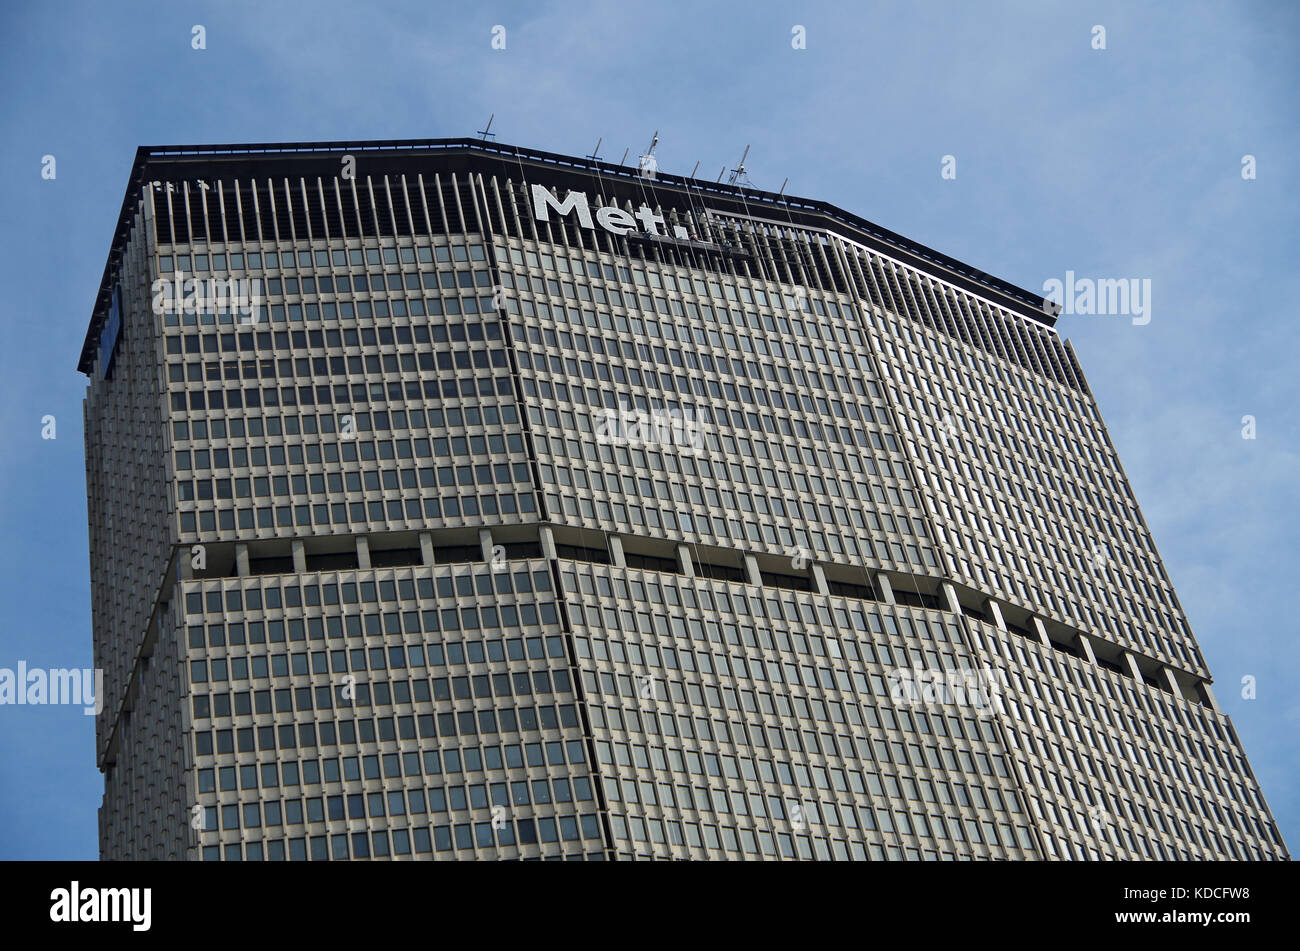 New York, NY, United States - September 26, 2017: MetLife sign being replaced at NYC headquarters. - Stock Image